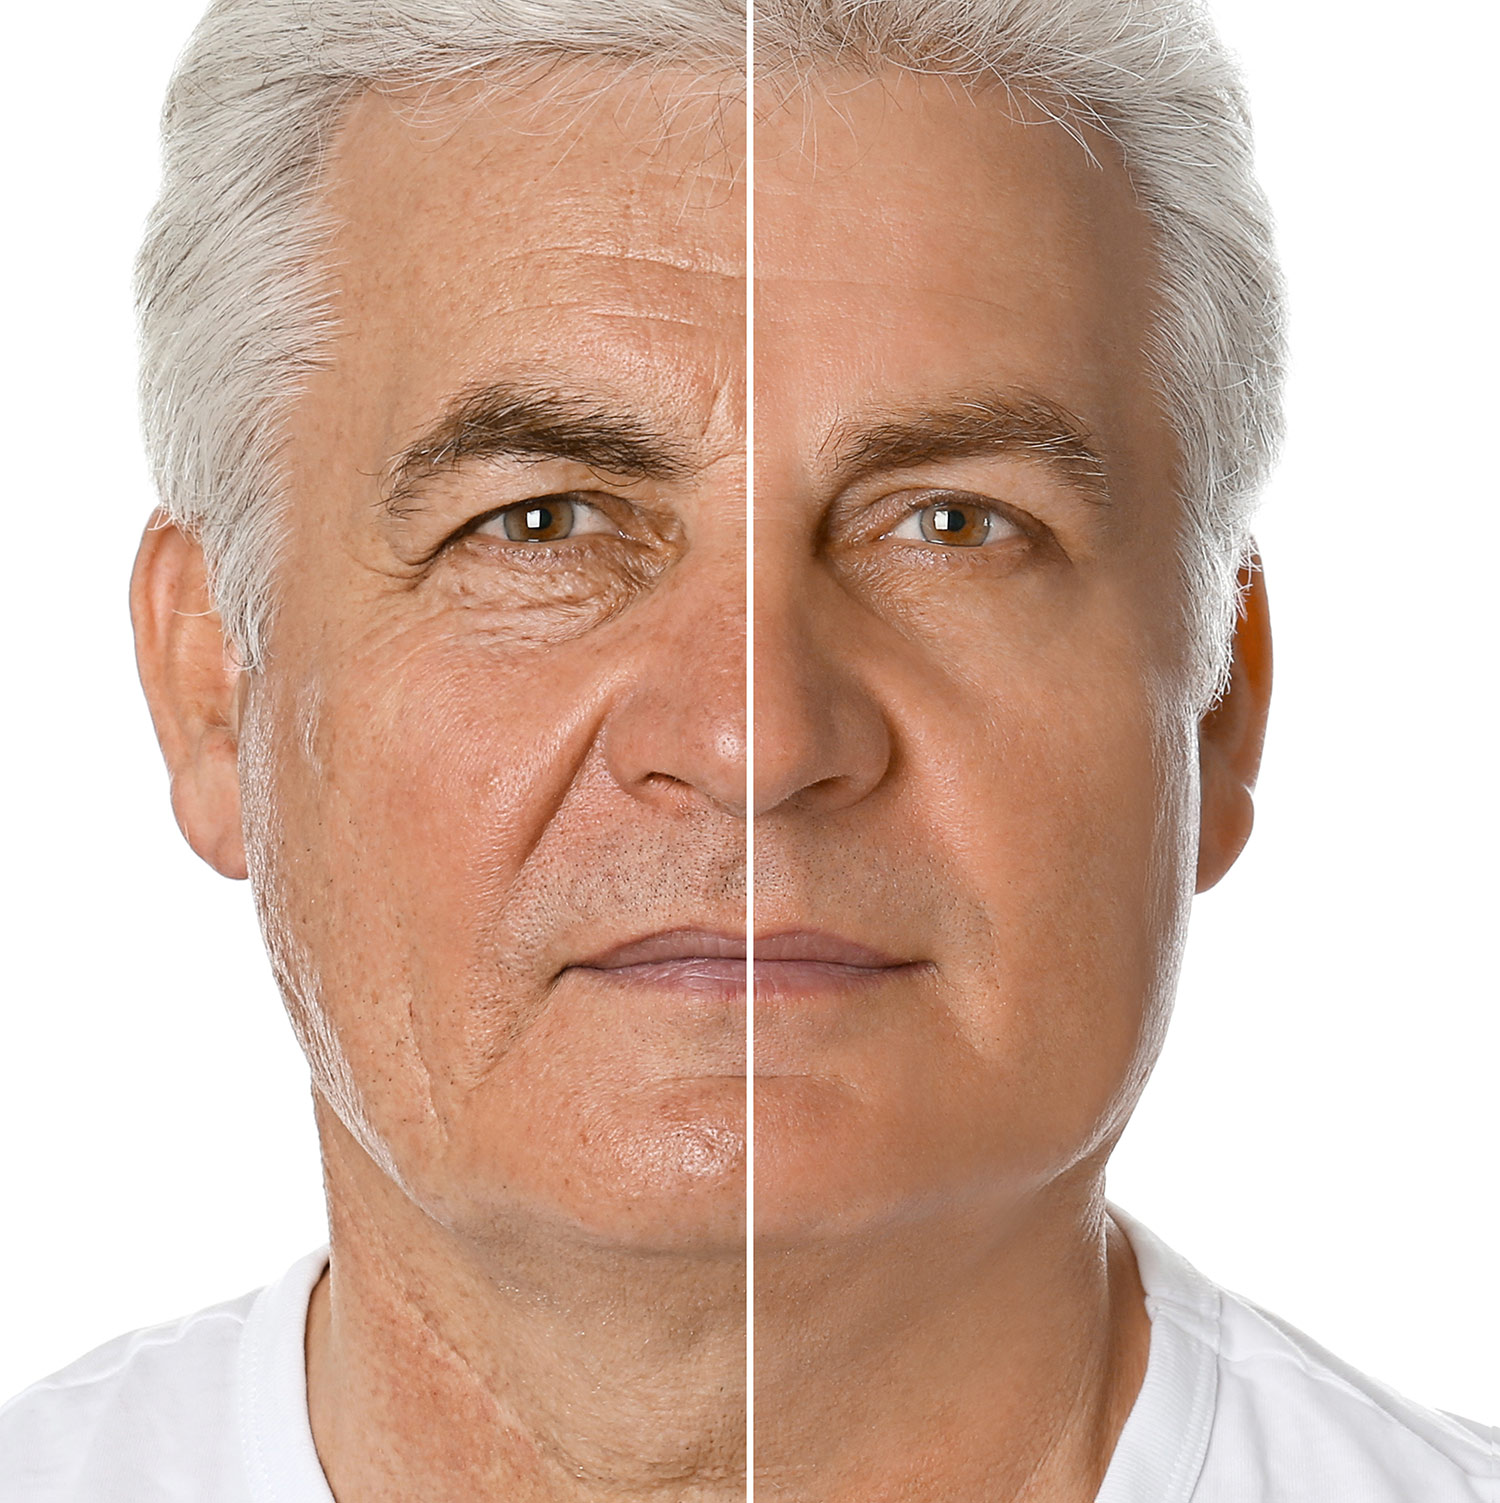 Male face, Before and After Blepharoplasty Treatment, front view